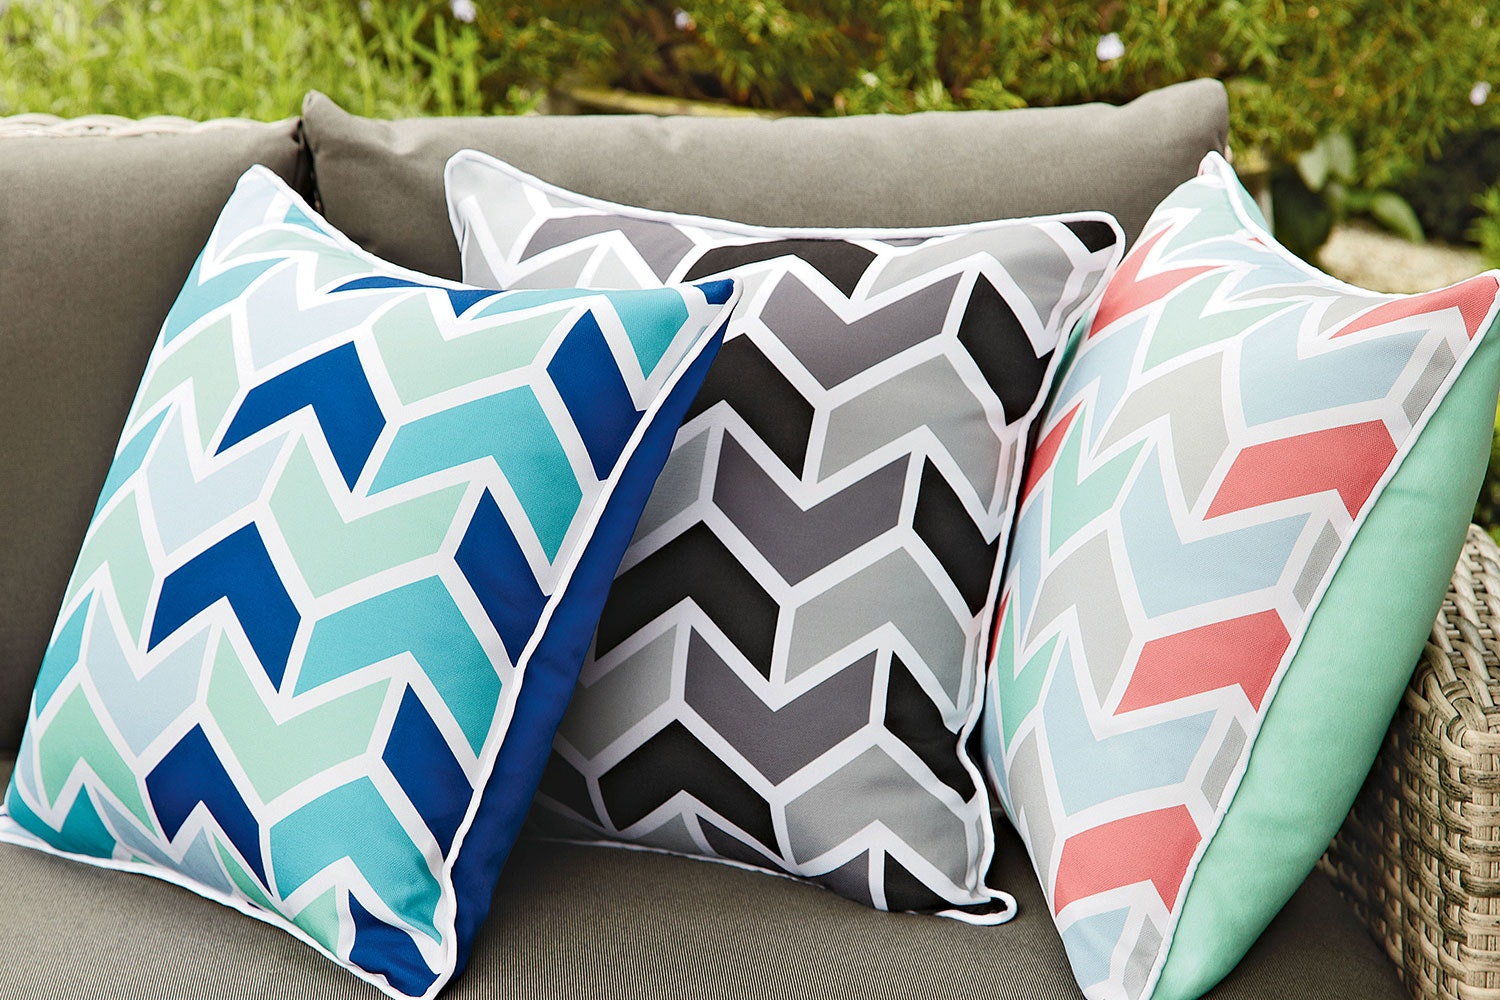 Albatross Outdoor Cushions by Mulberi